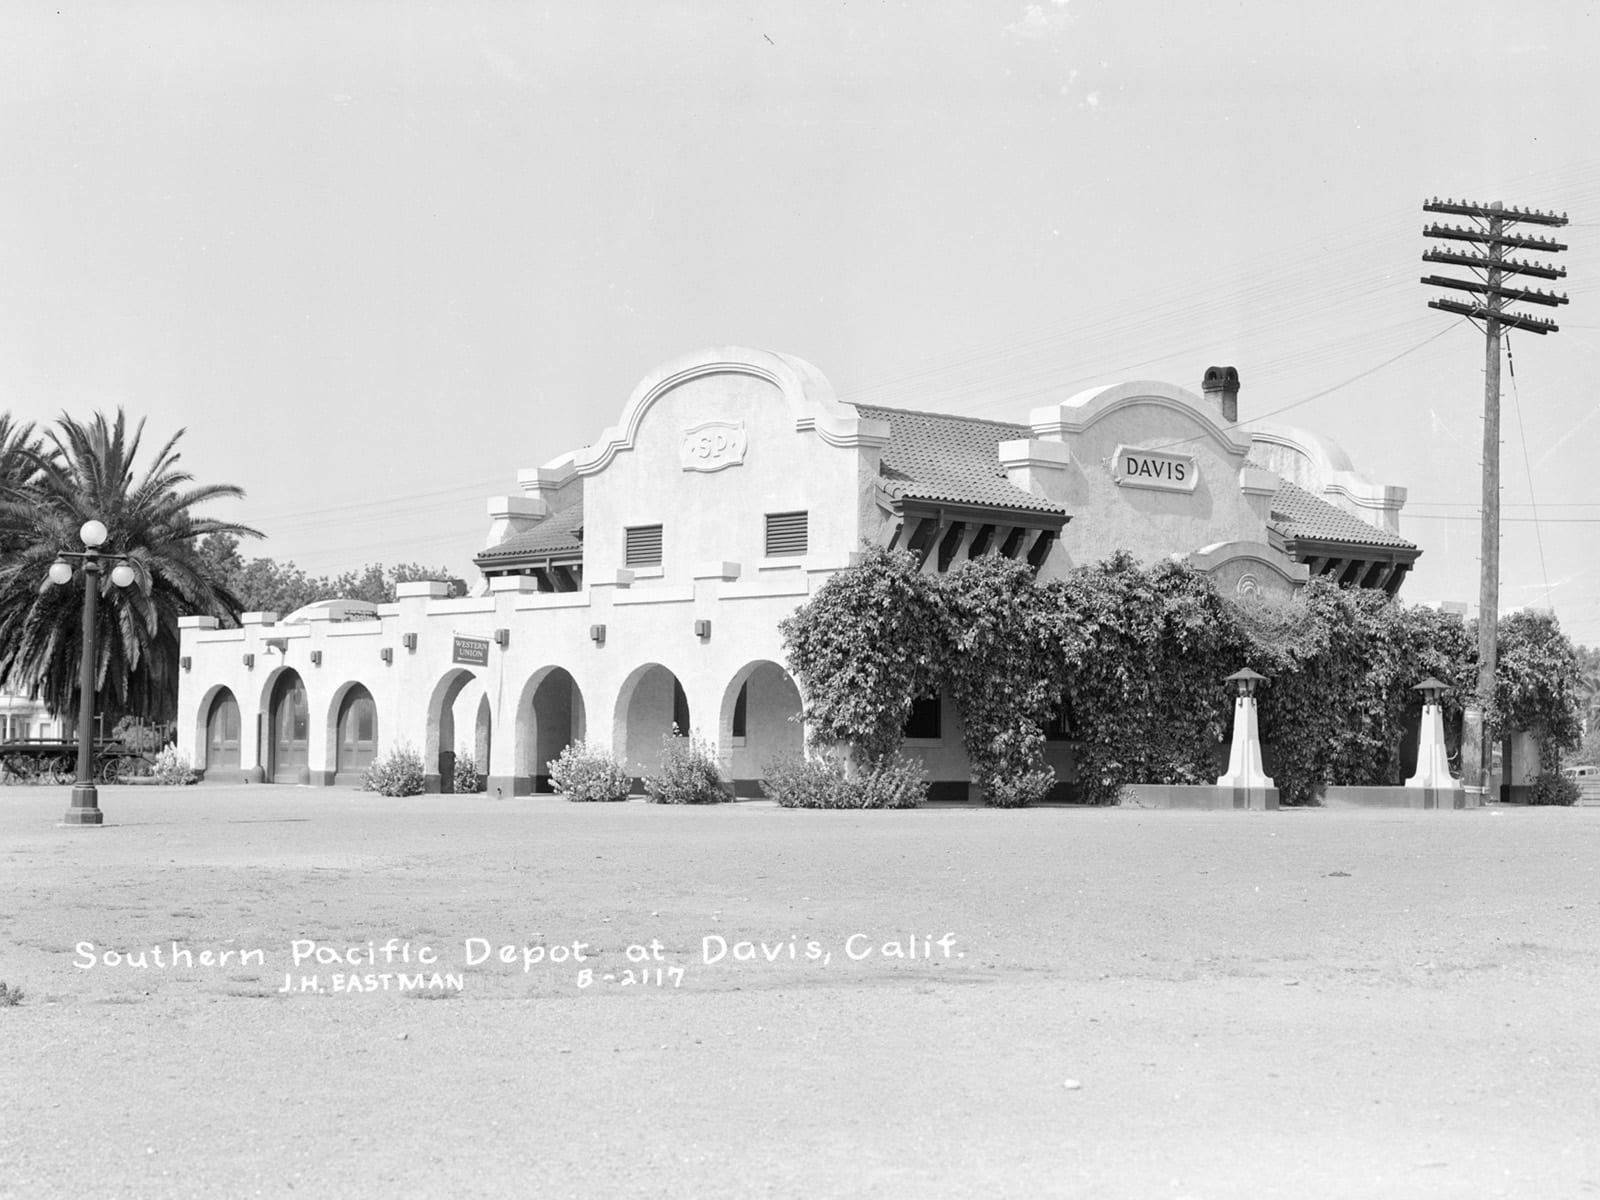 Southern Pacific Depot, 1944